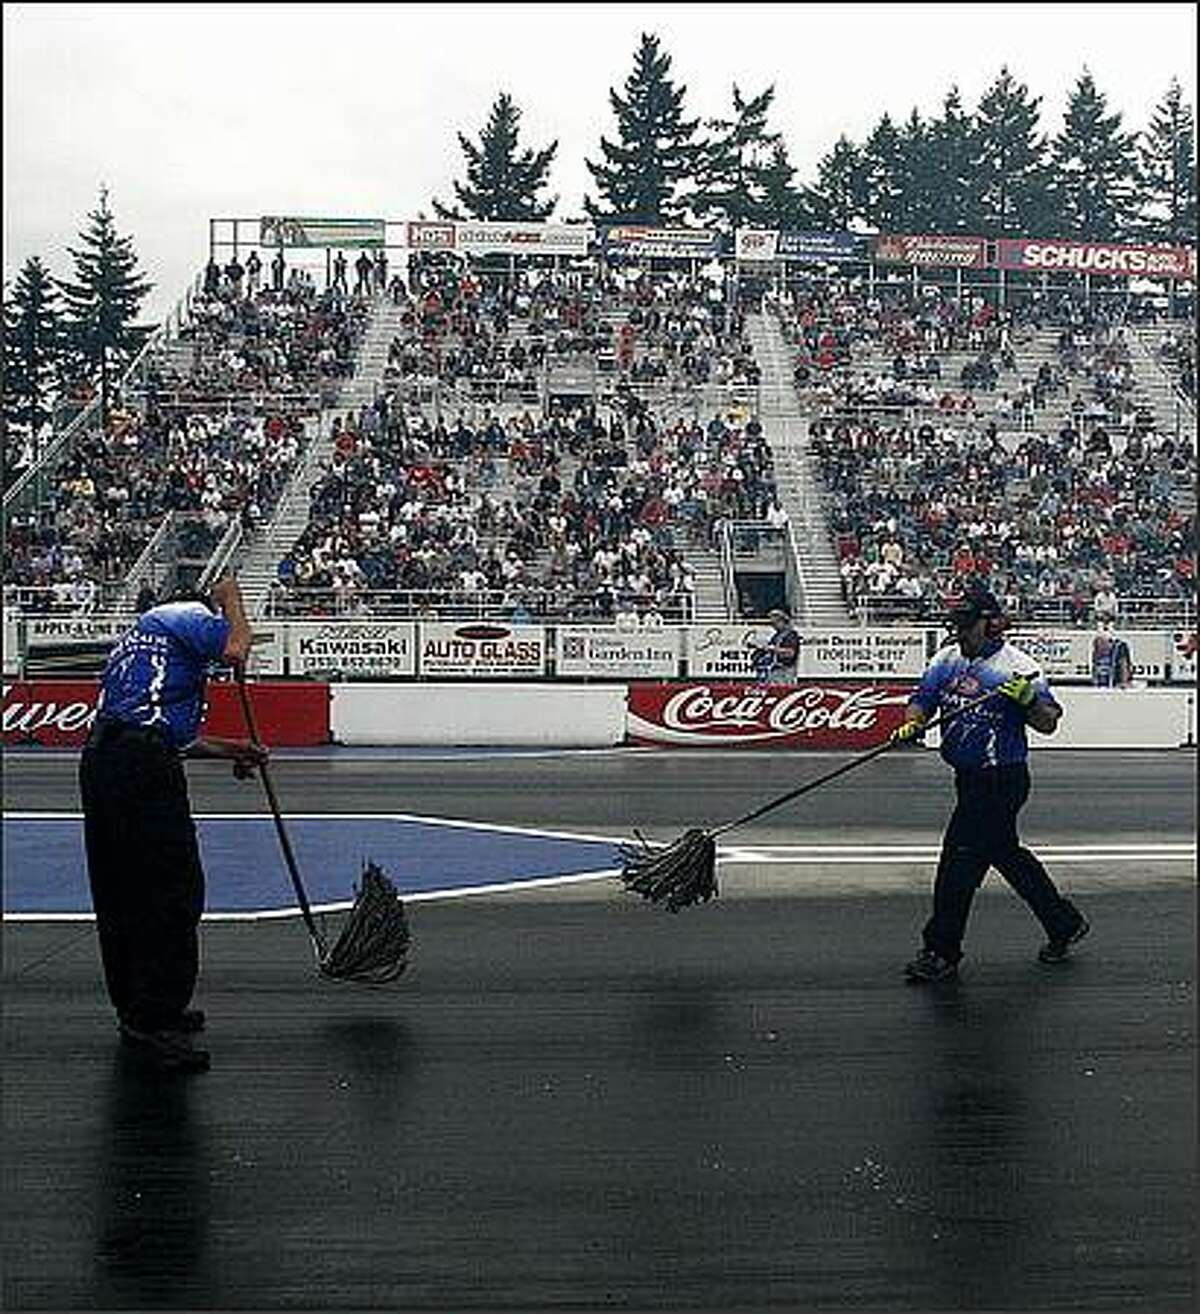 Workers use mops to clean off the raceway at the NHRA finals at Pacific Raceway in Kent Friday evening.